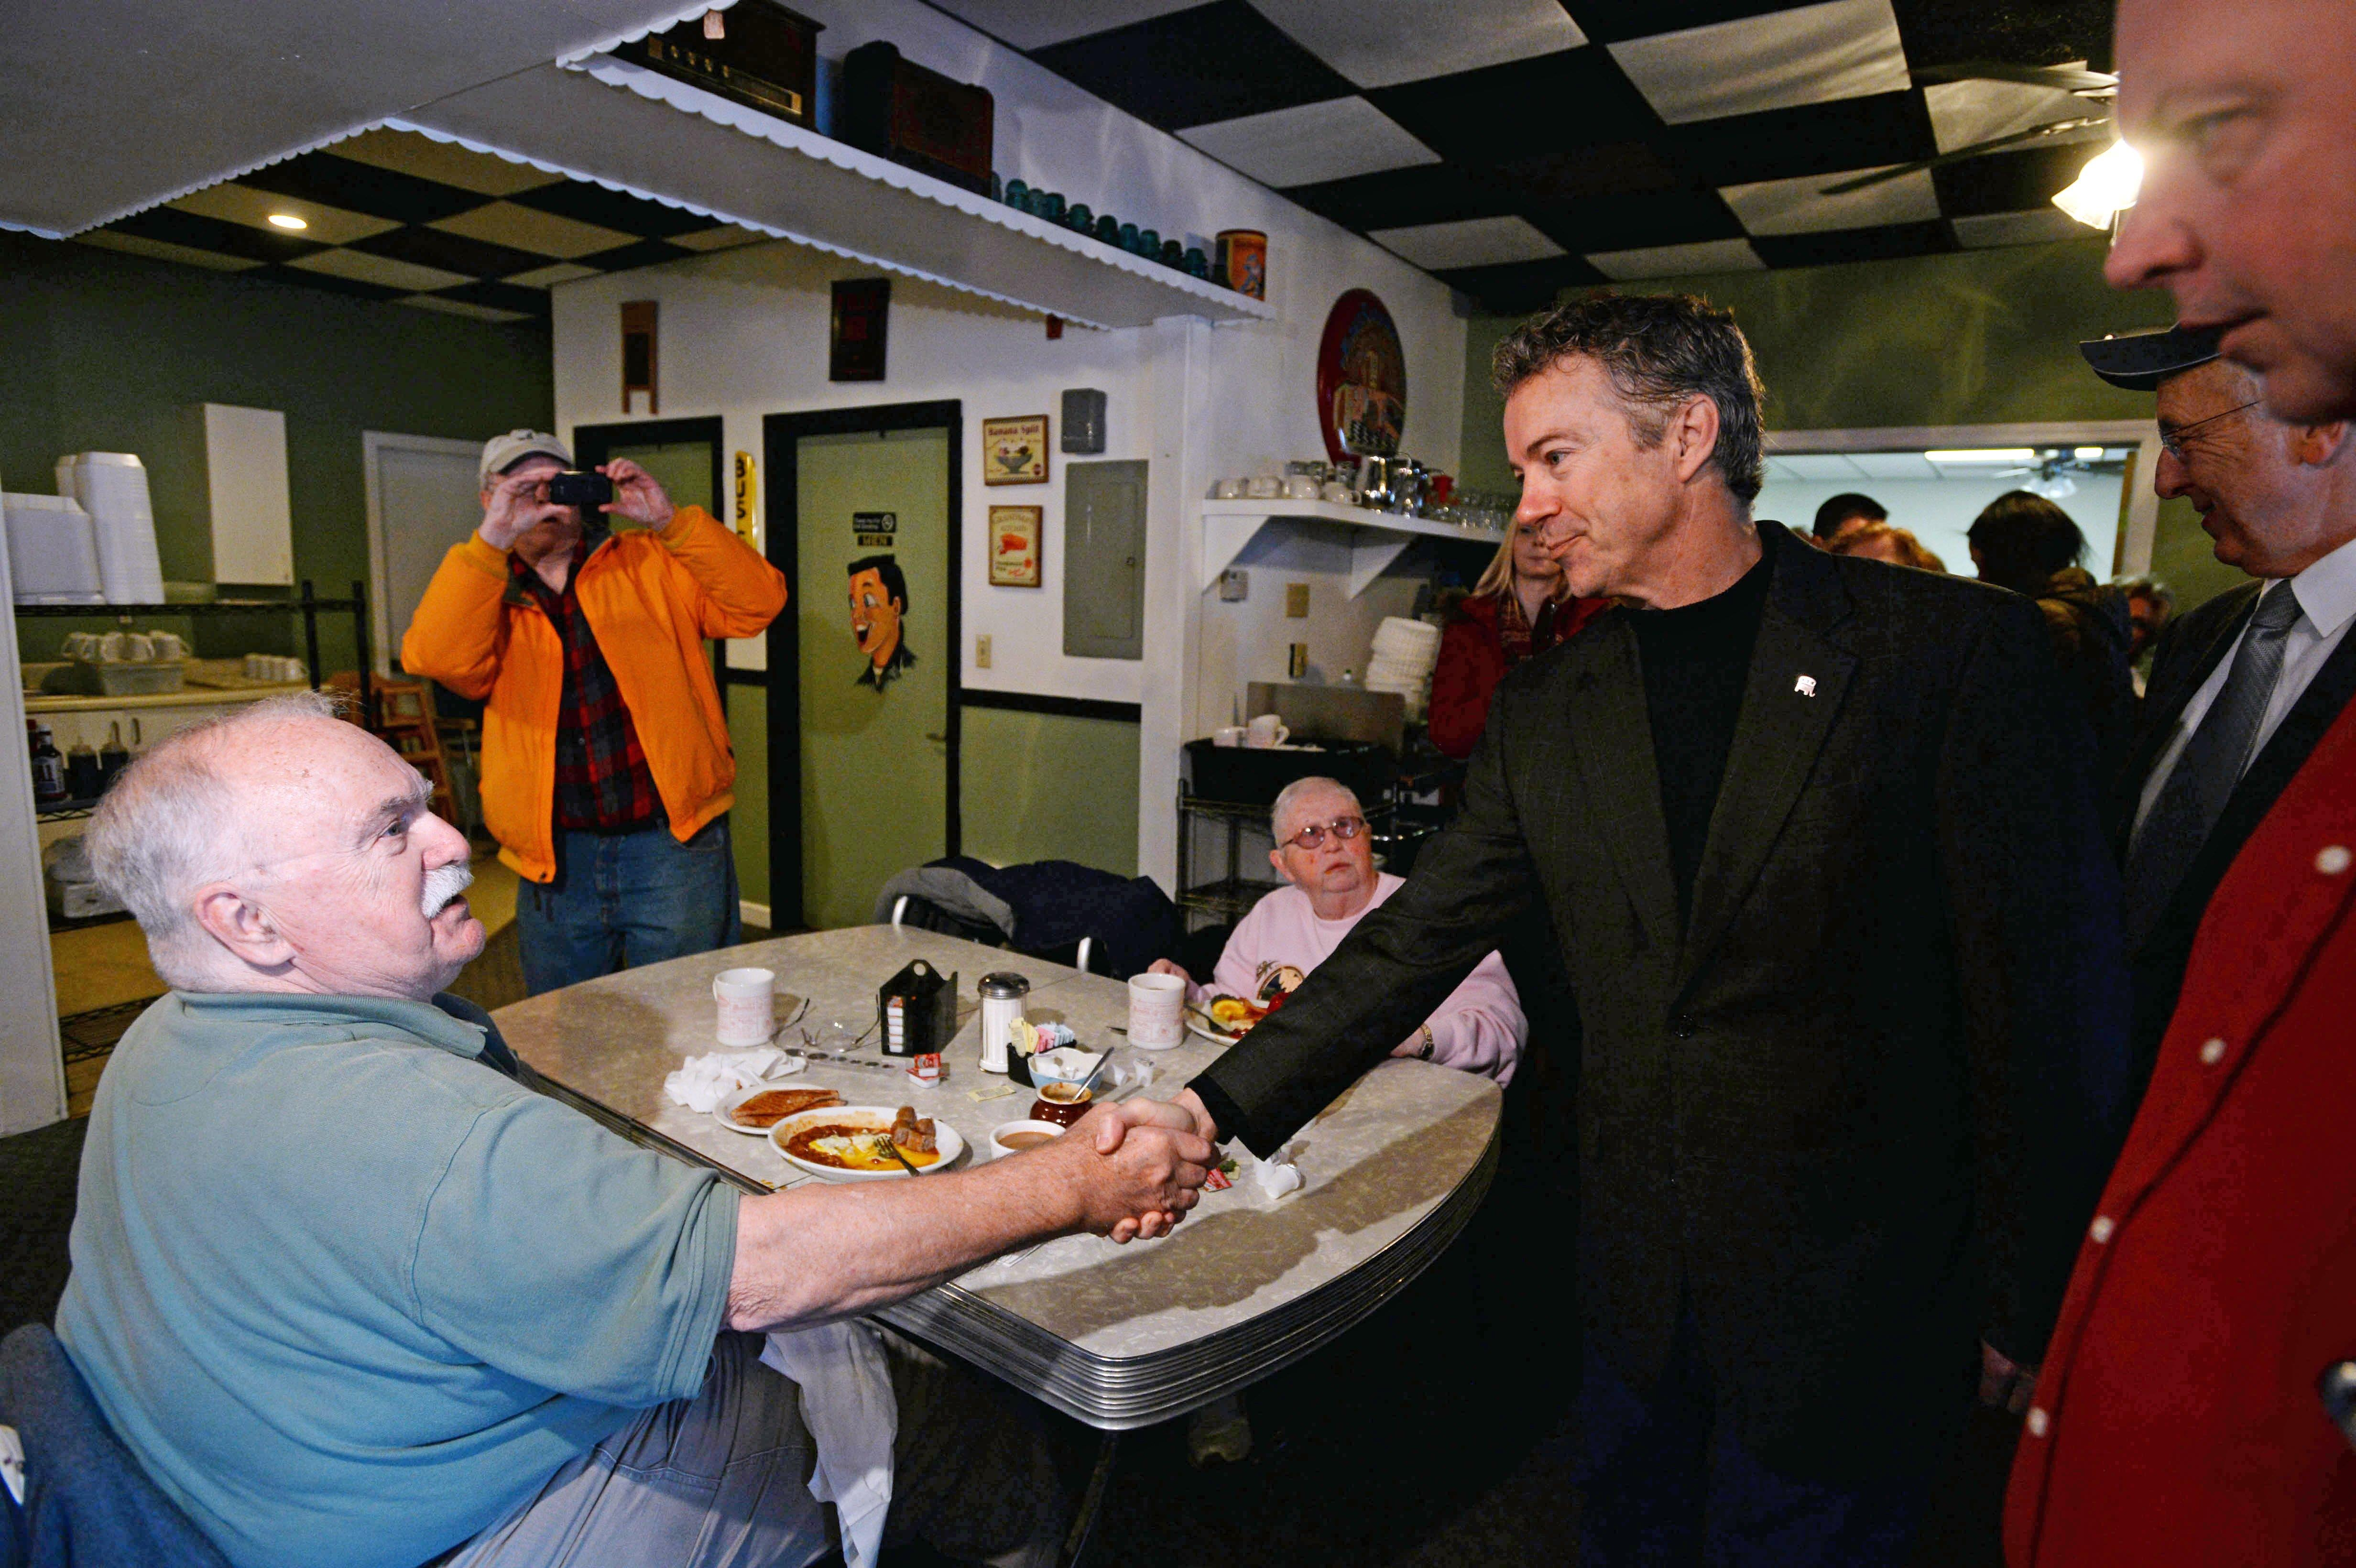 Image: Rand Paul Meets Potential Voters In Crucial Primary State Of New Hampshire